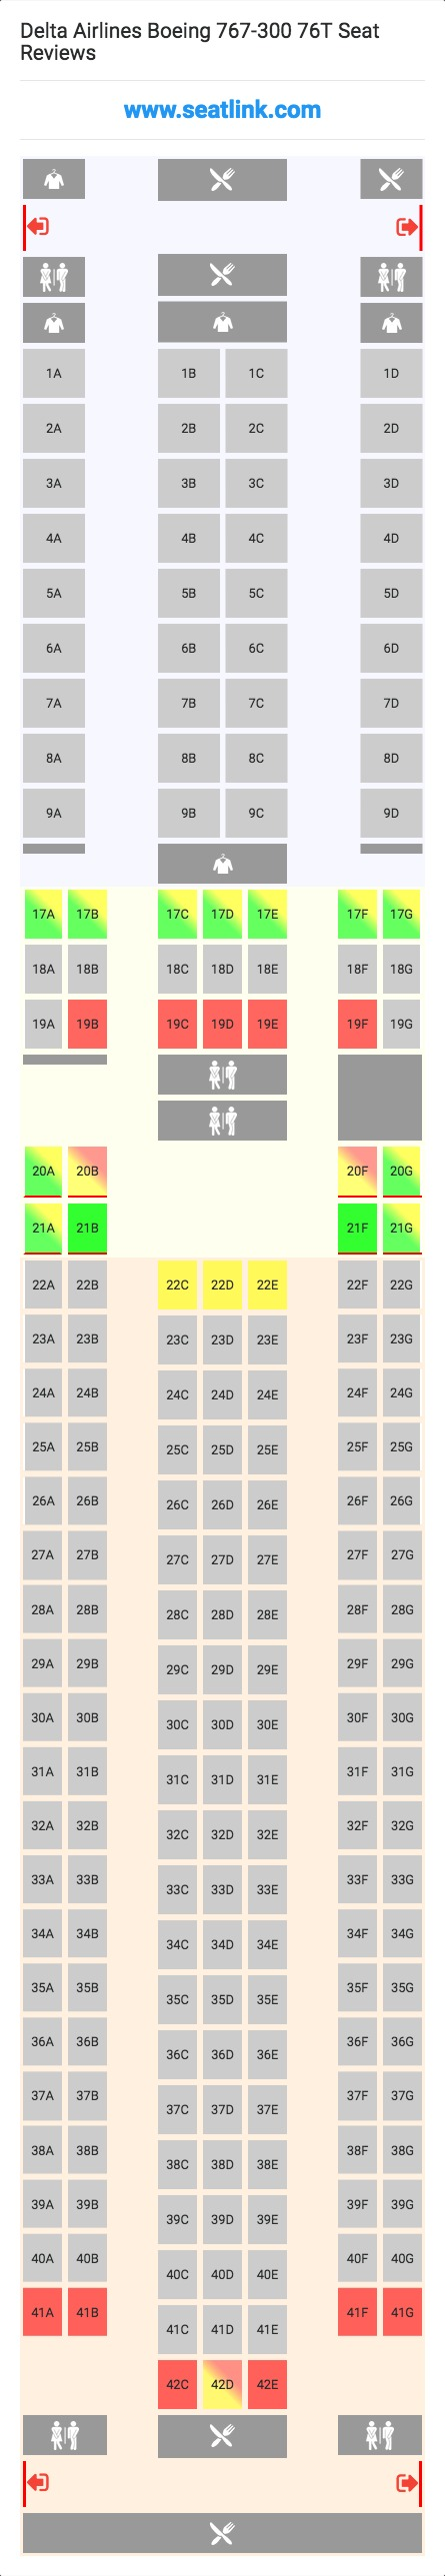 Delta Airlines Boeing 767-300 76T Seating Chart - Updated July 2019 on